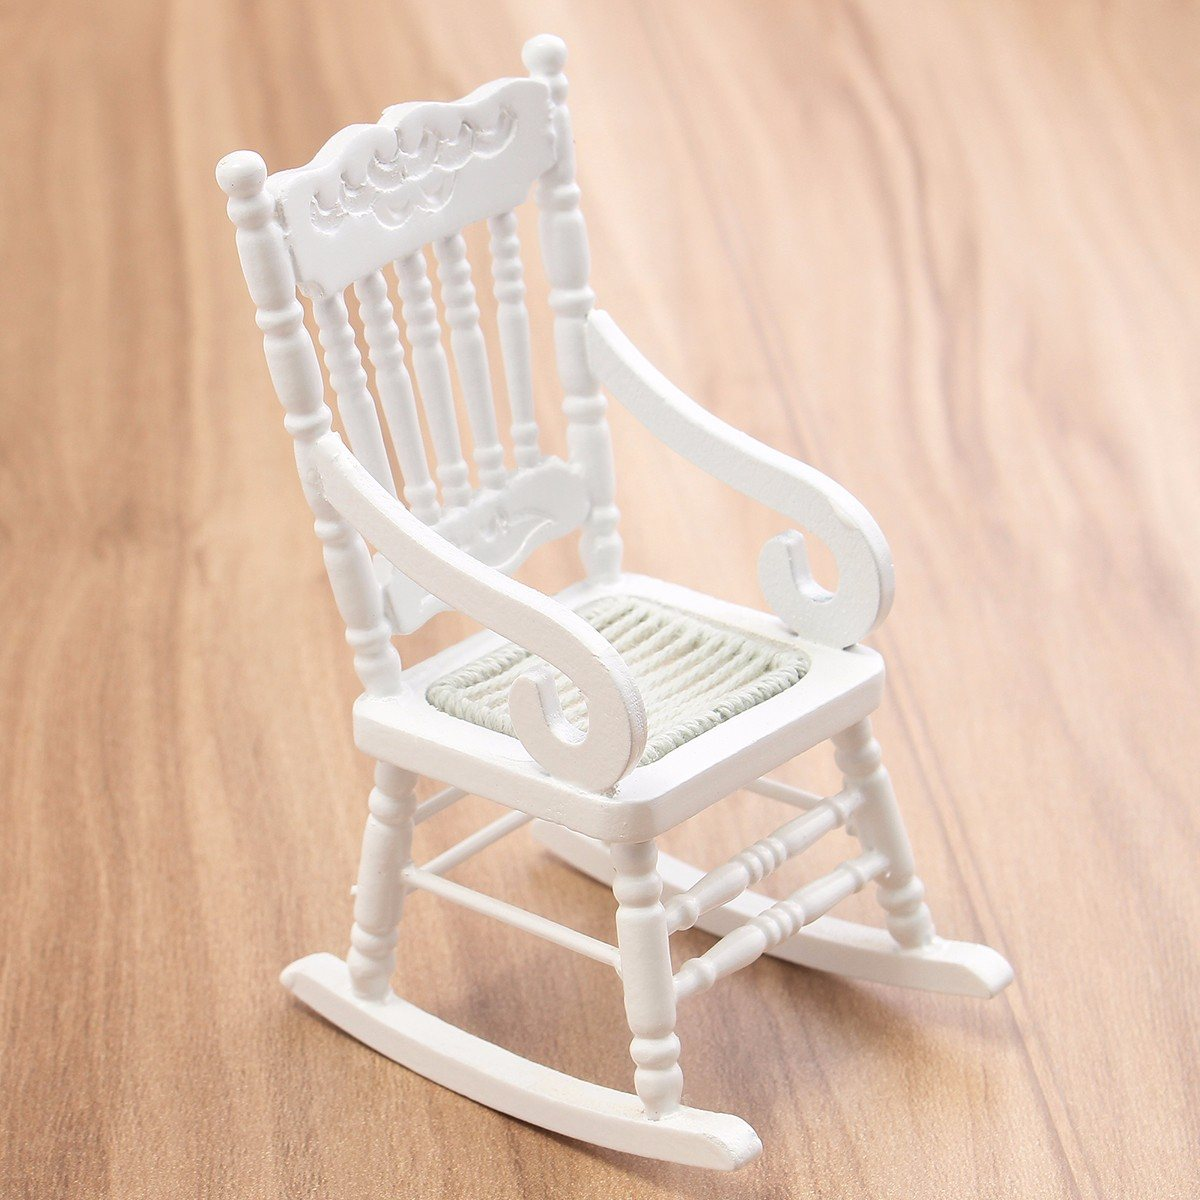 New <font><b>1</b></font>:<font><b>12</b></font> Dollhouse Miniature Furniture White Wooden Rocking Chair Hemp Rope Seat For <font><b>Dolls</b></font> <font><b>House</b></font> <font><b>Accessories</b></font> Decor Toys image